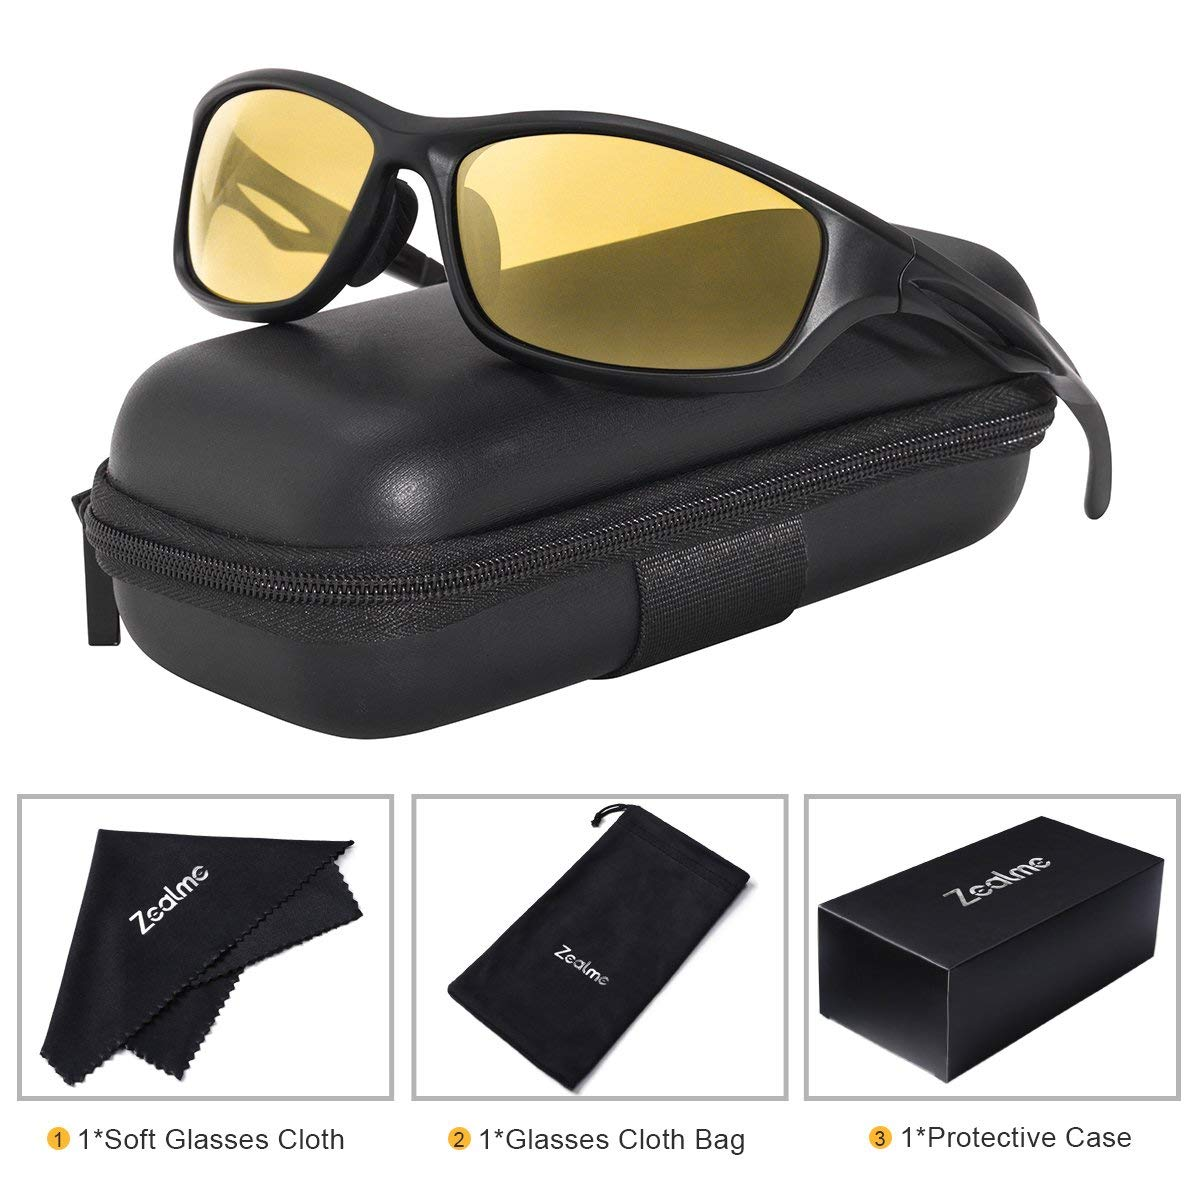 0bbf4cfc328 Get Quotations · Zealme Polarized Sports Sunglasses for Men Women  Lightweight Durable Plastic Frame HD Vision Anti Glare Lens